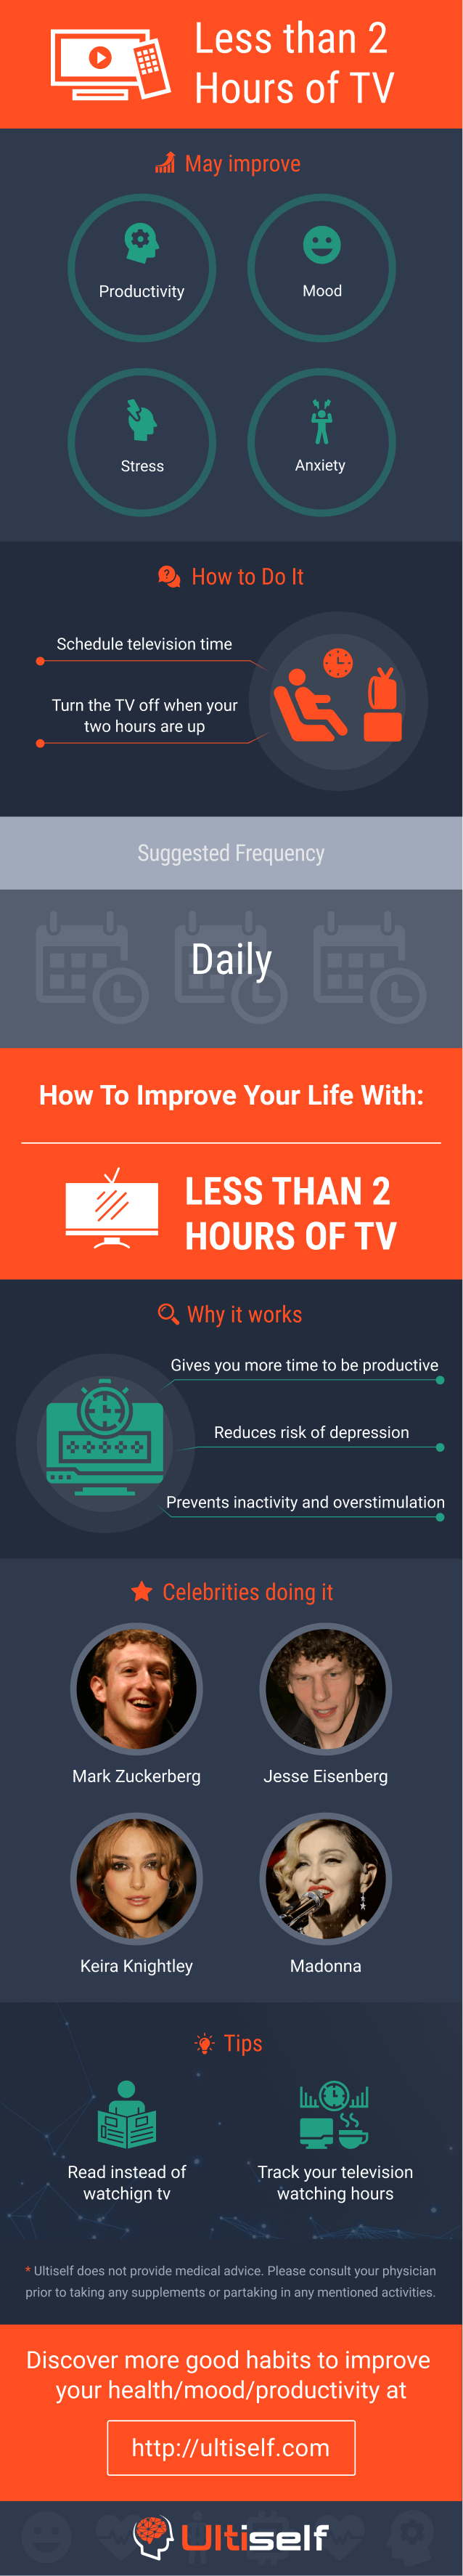 Less than 2 hours of tv infographic